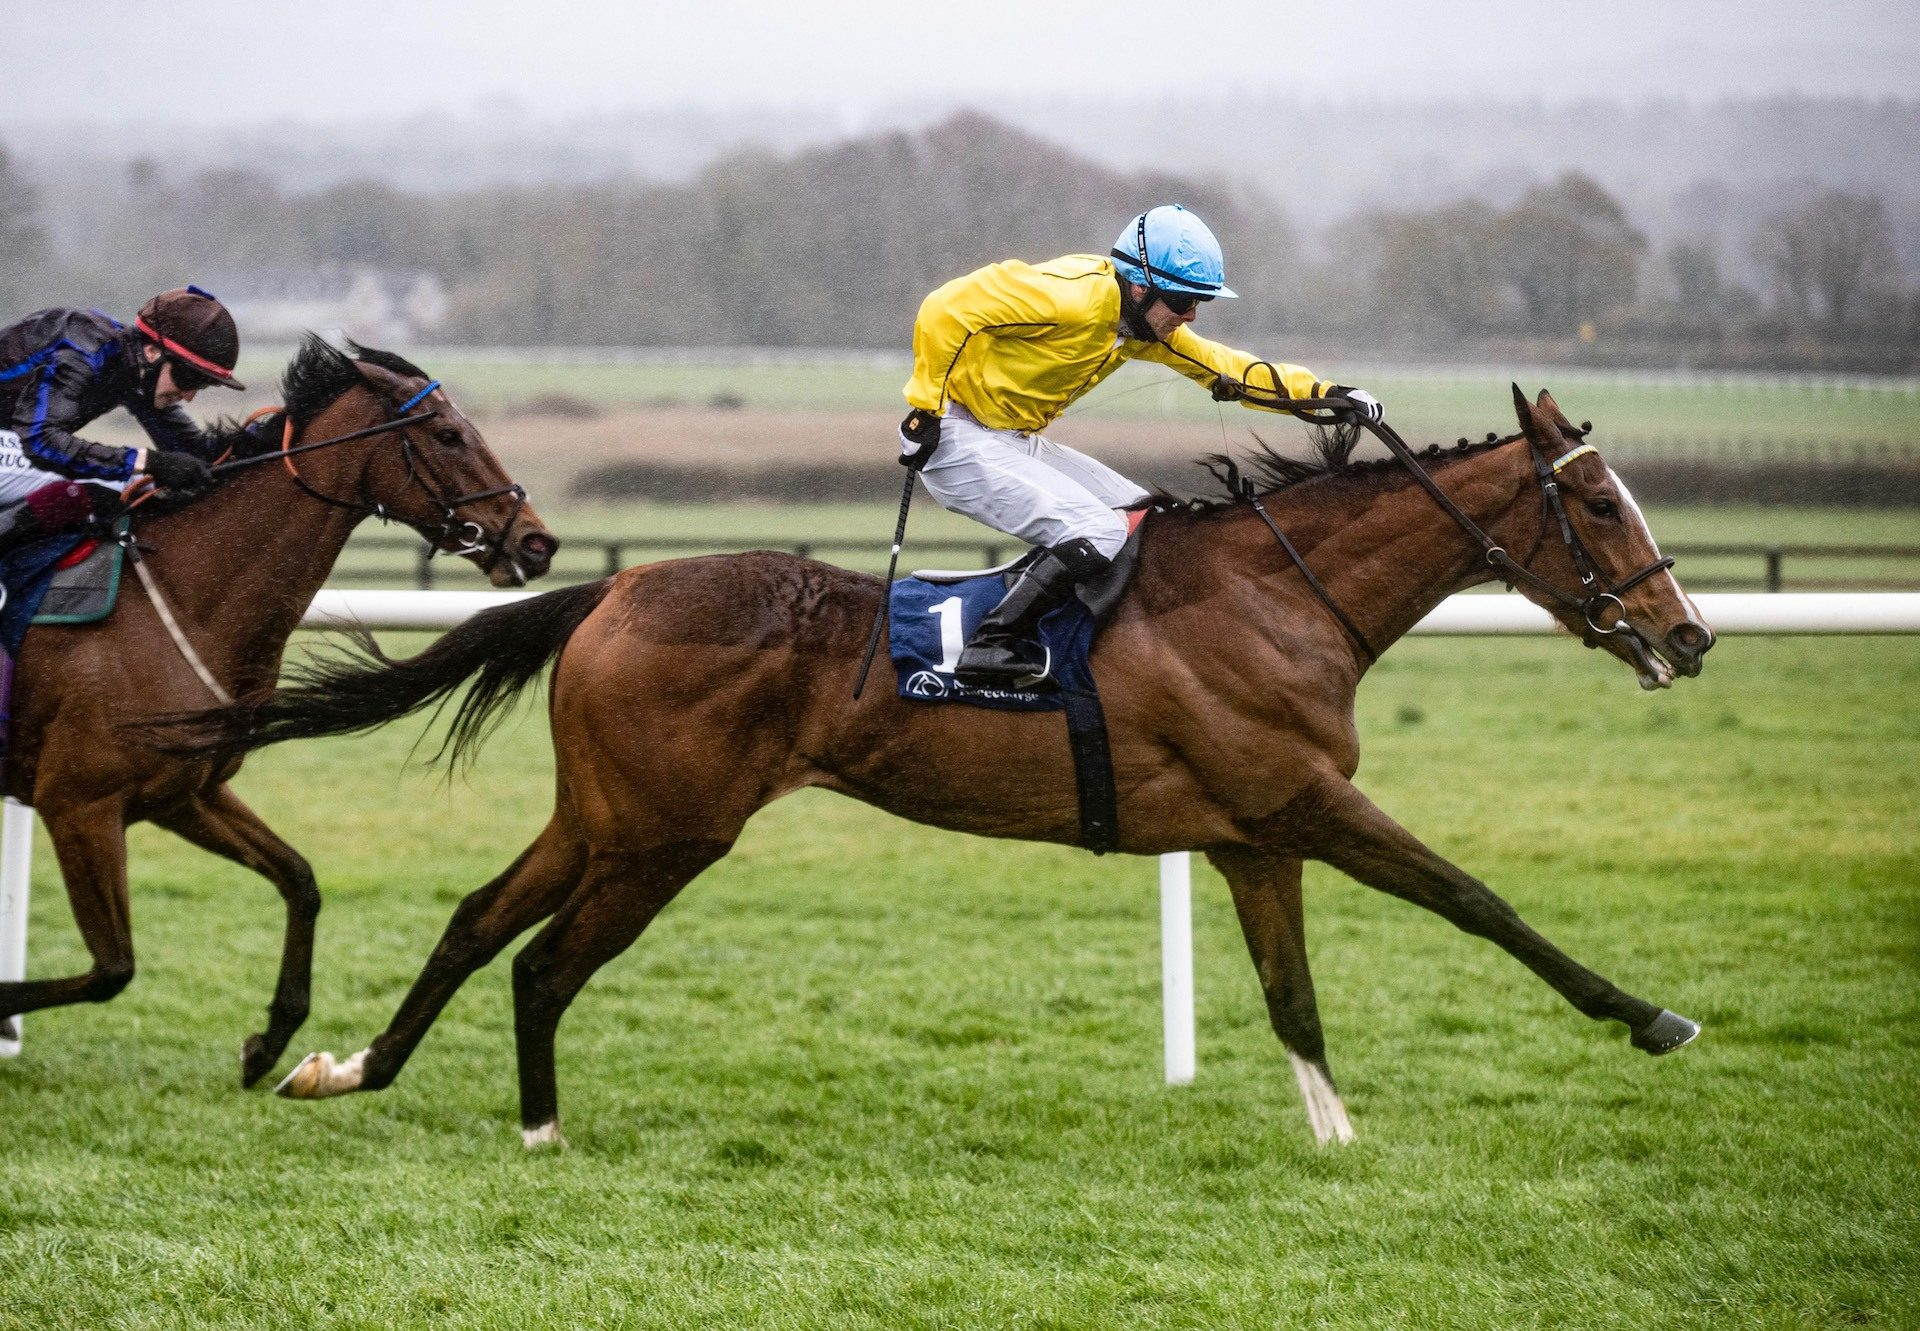 Measure Of Time (Gleneagles) winning the Listed Prix Michel Houyvet at Deauville